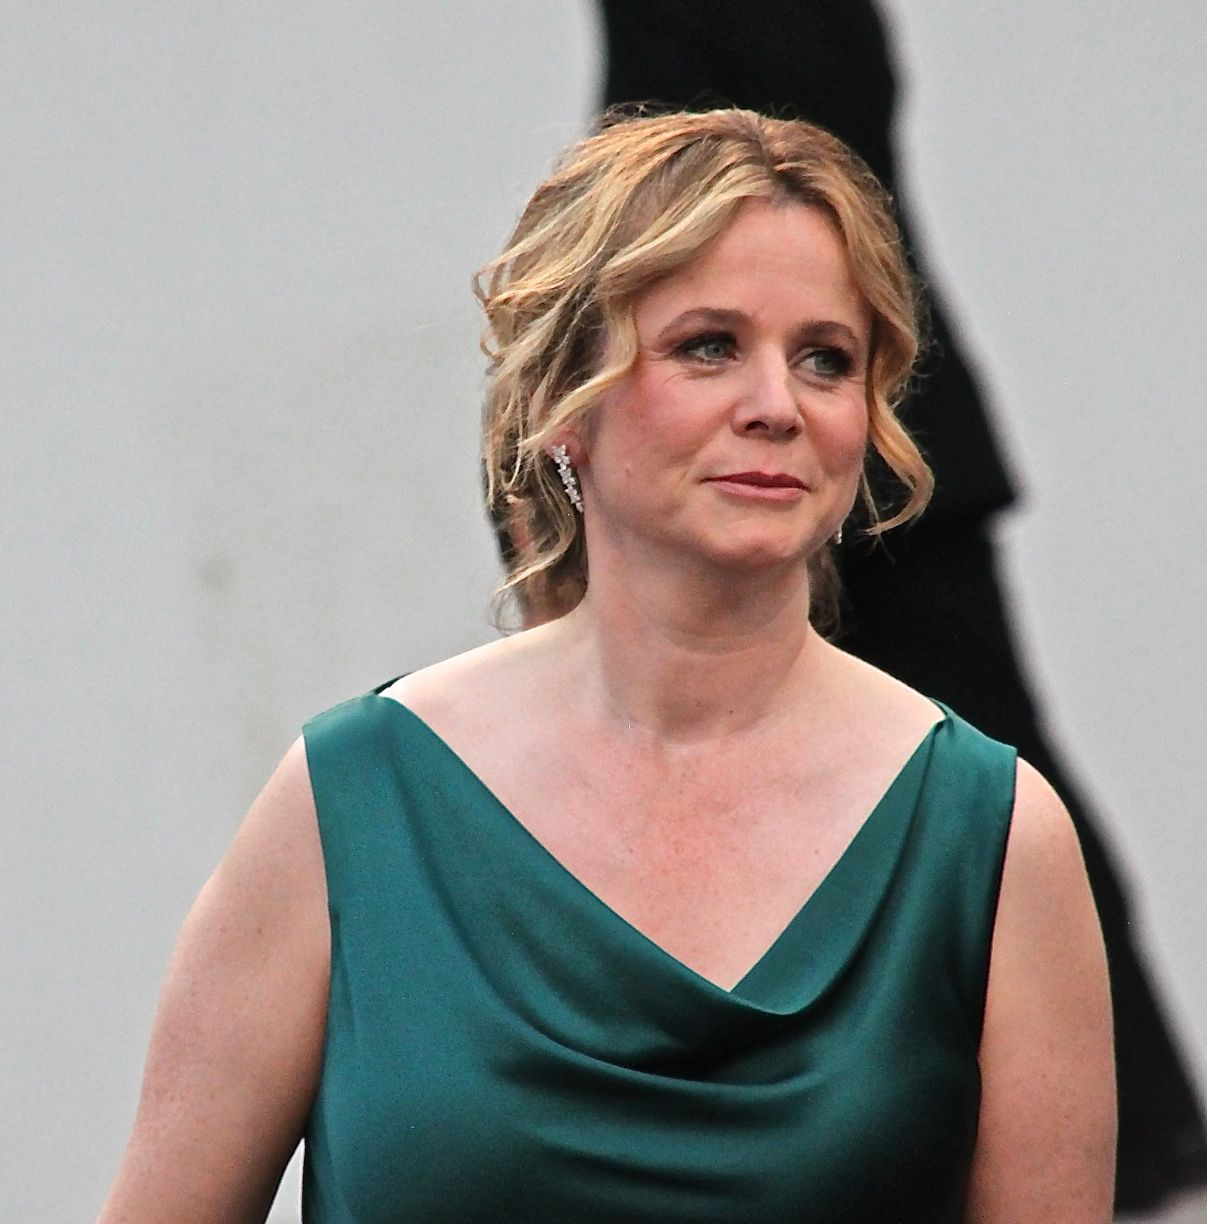 Emily Watson in a simple, elegant emerald dress for the Everest premiere in Venice, 2015